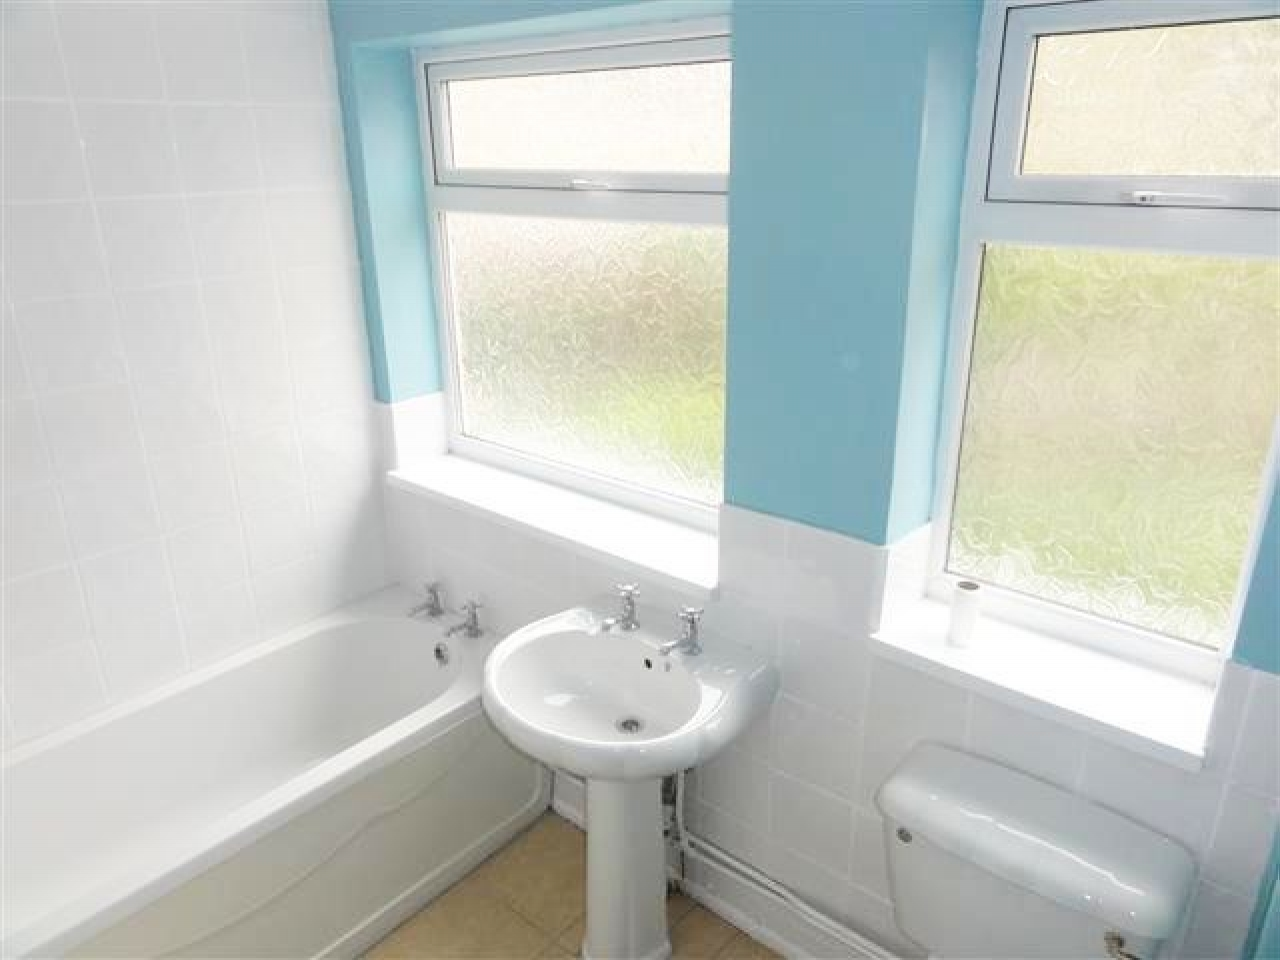 Image 1 of 1 of Bathroom, on Accommodation Comprising for